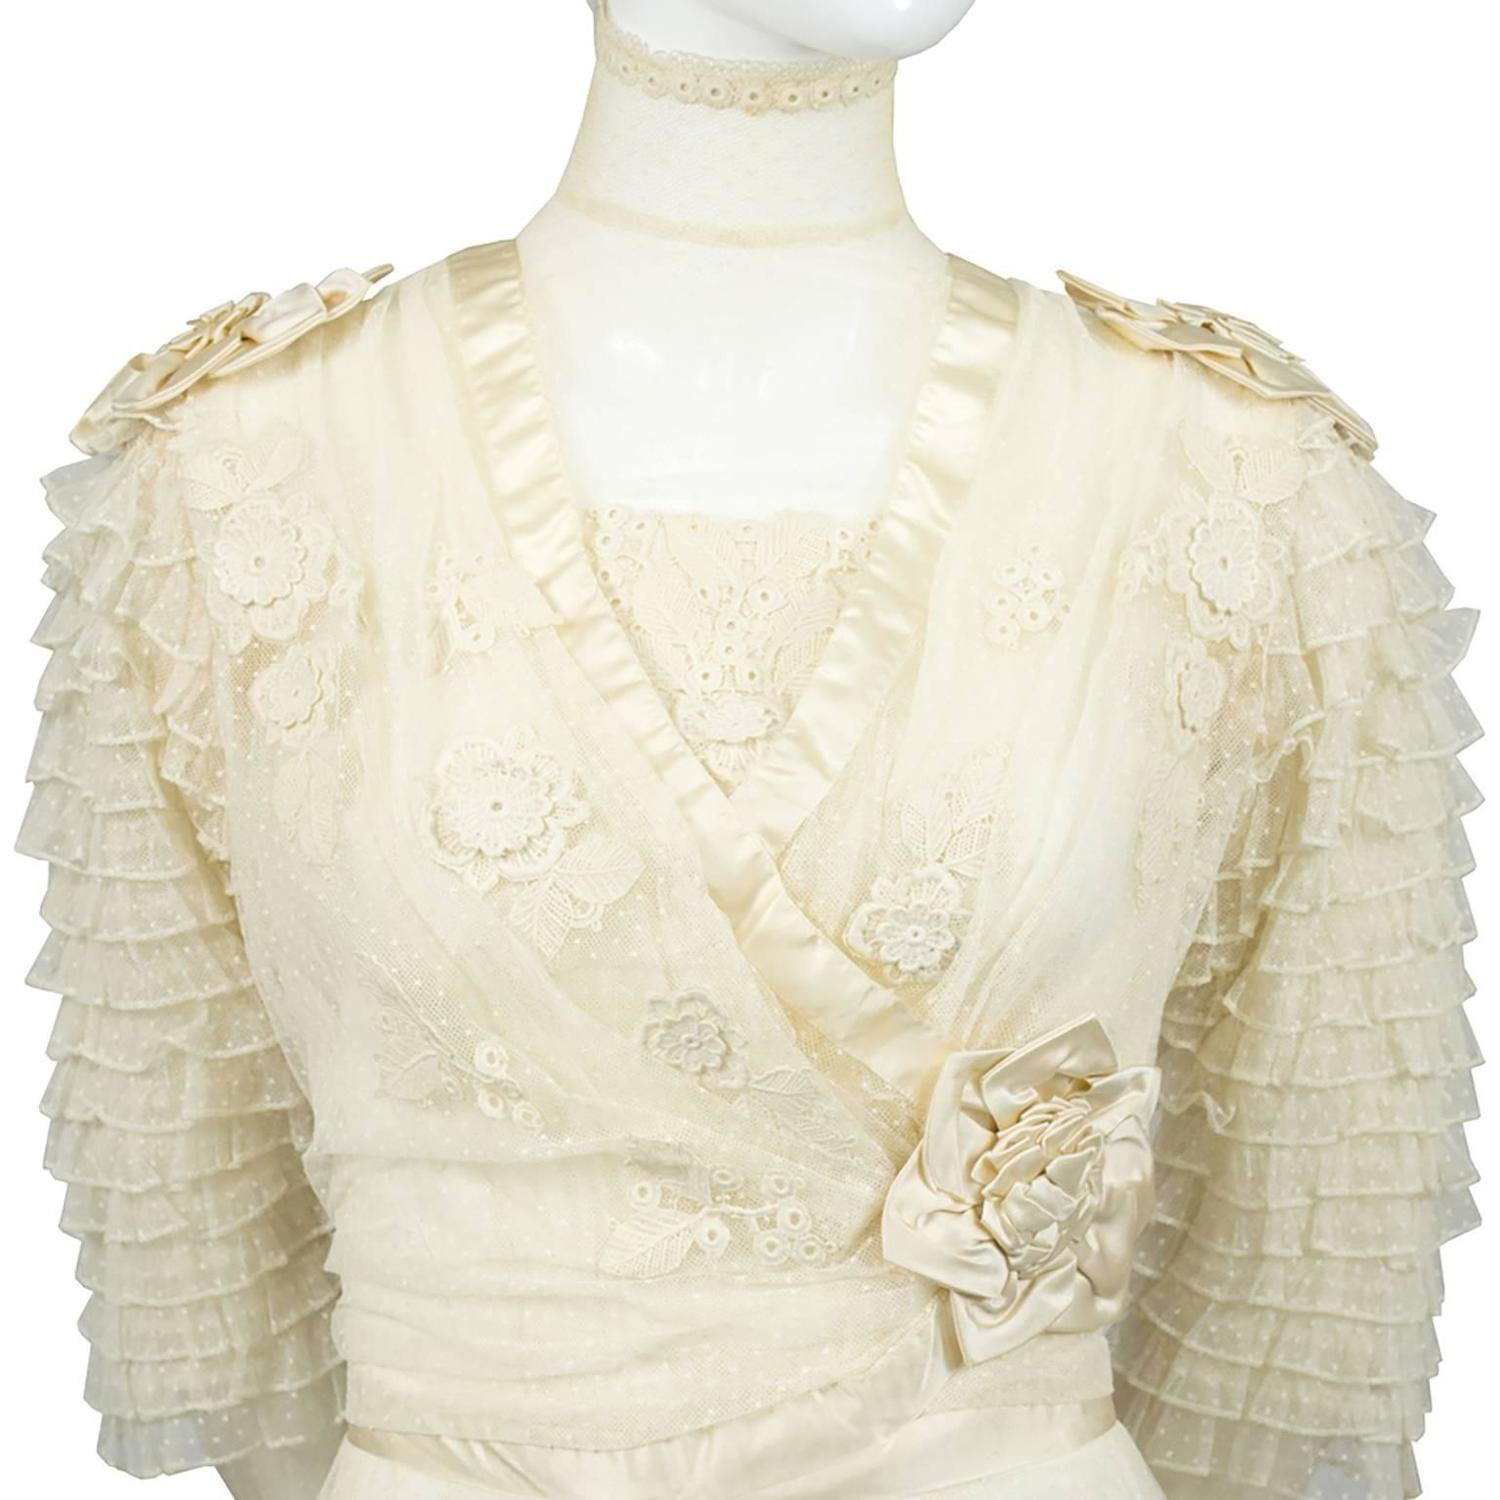 Edwardian fine lace vintage wedding gown veil silk roses for Antique rose wedding dress